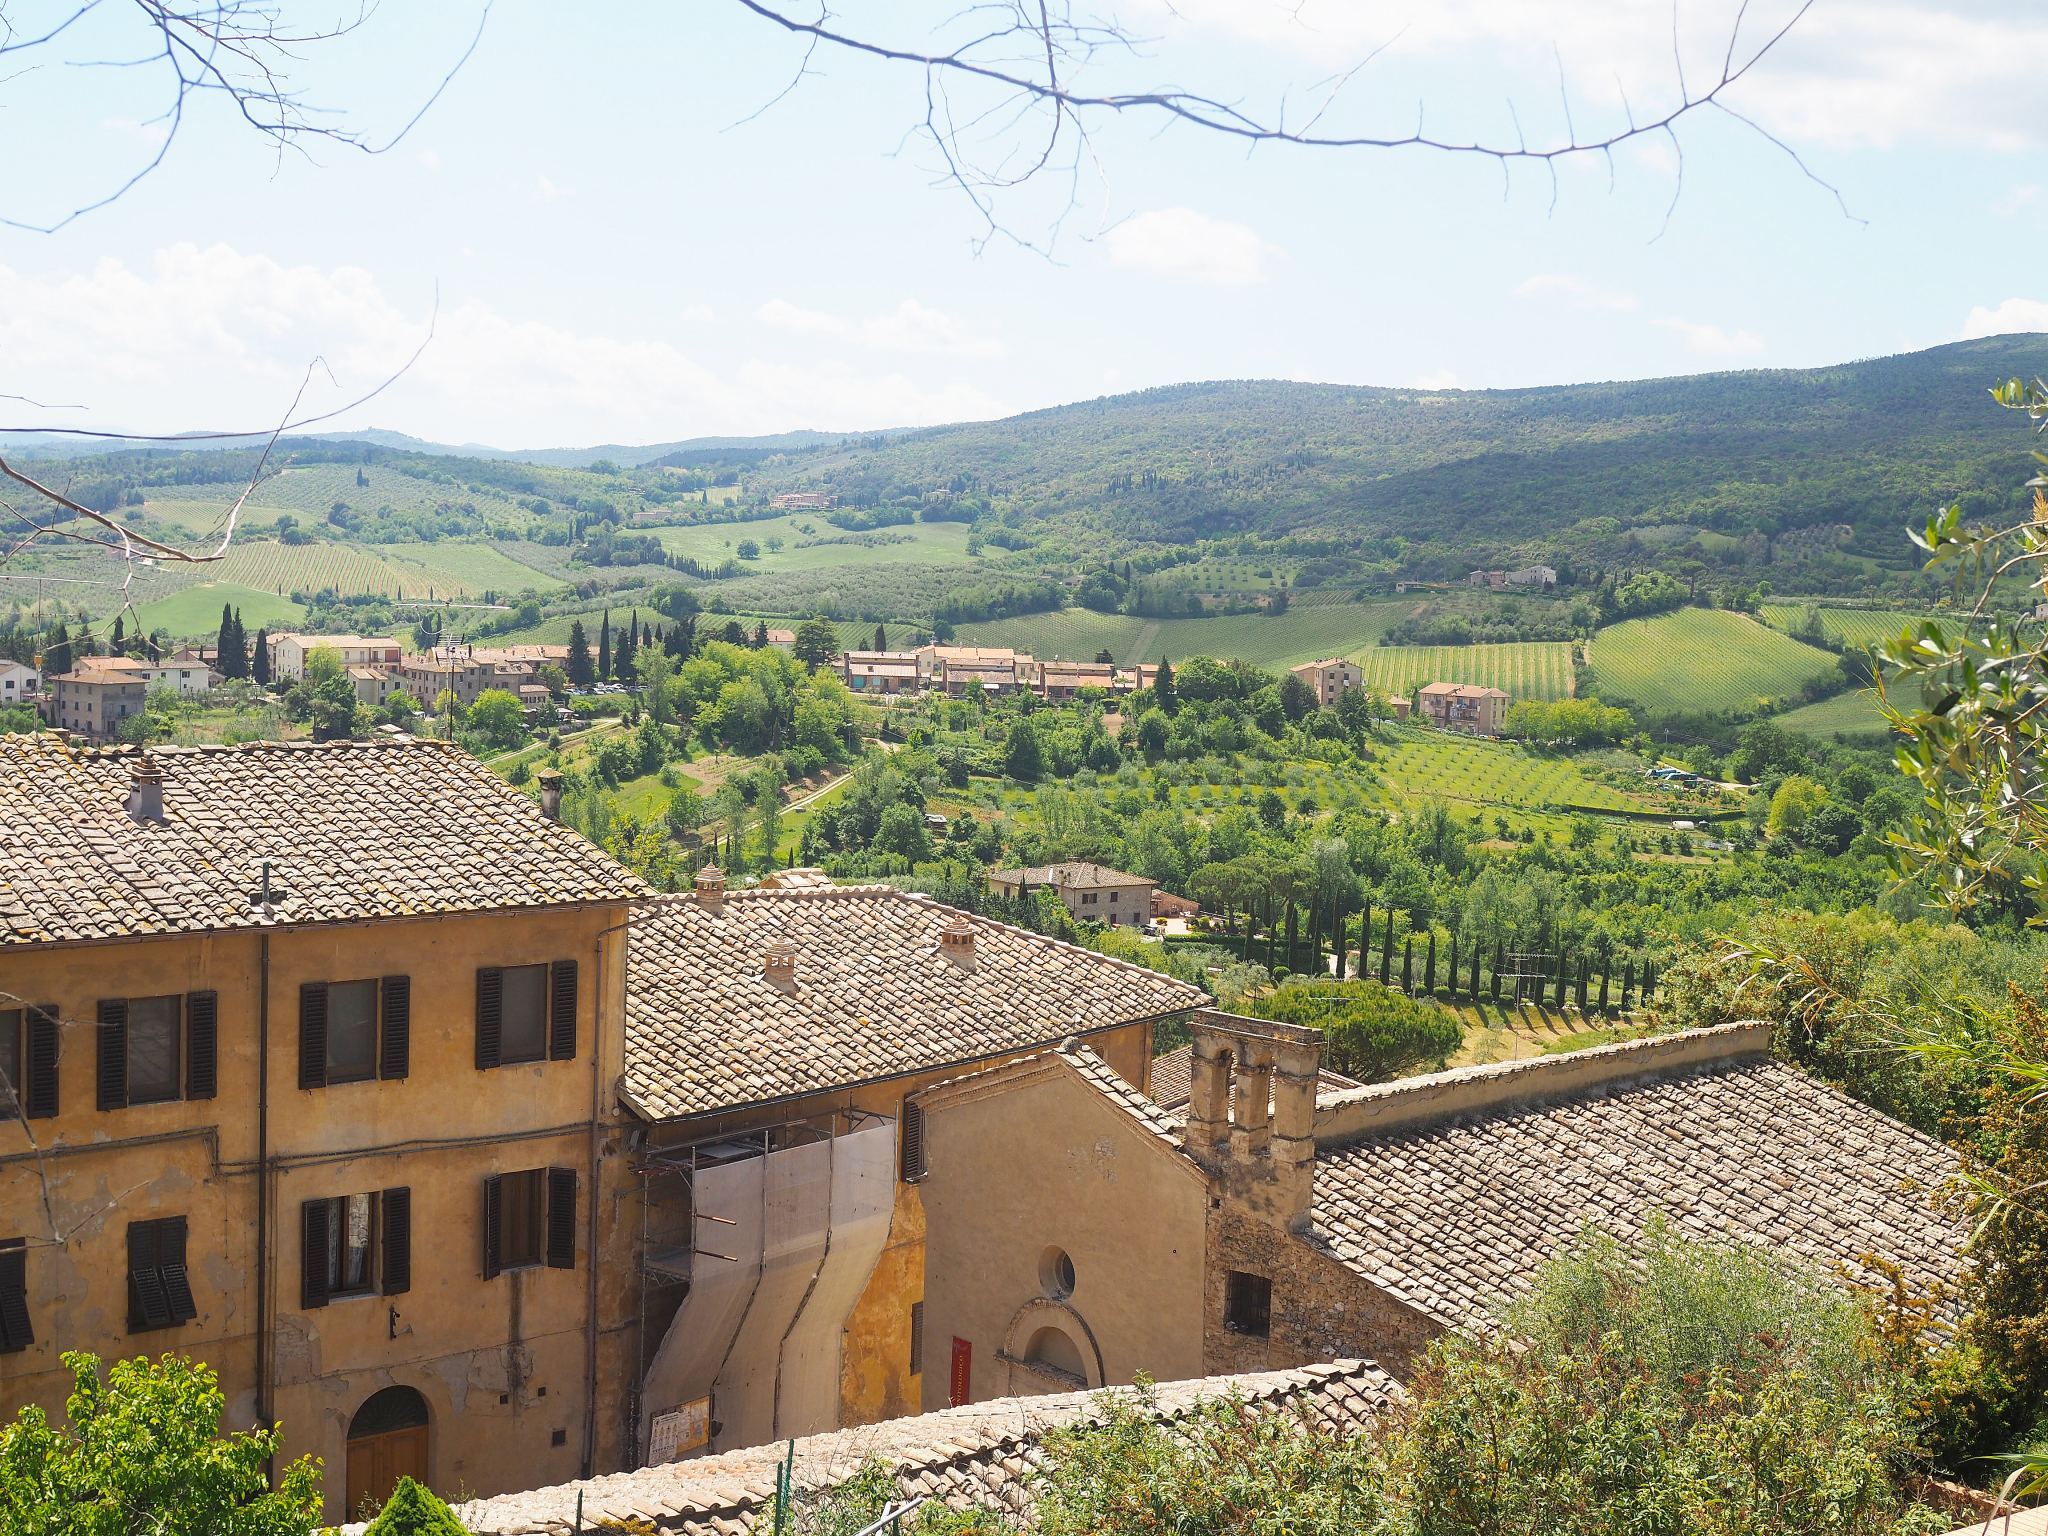 Travel to Tuscany